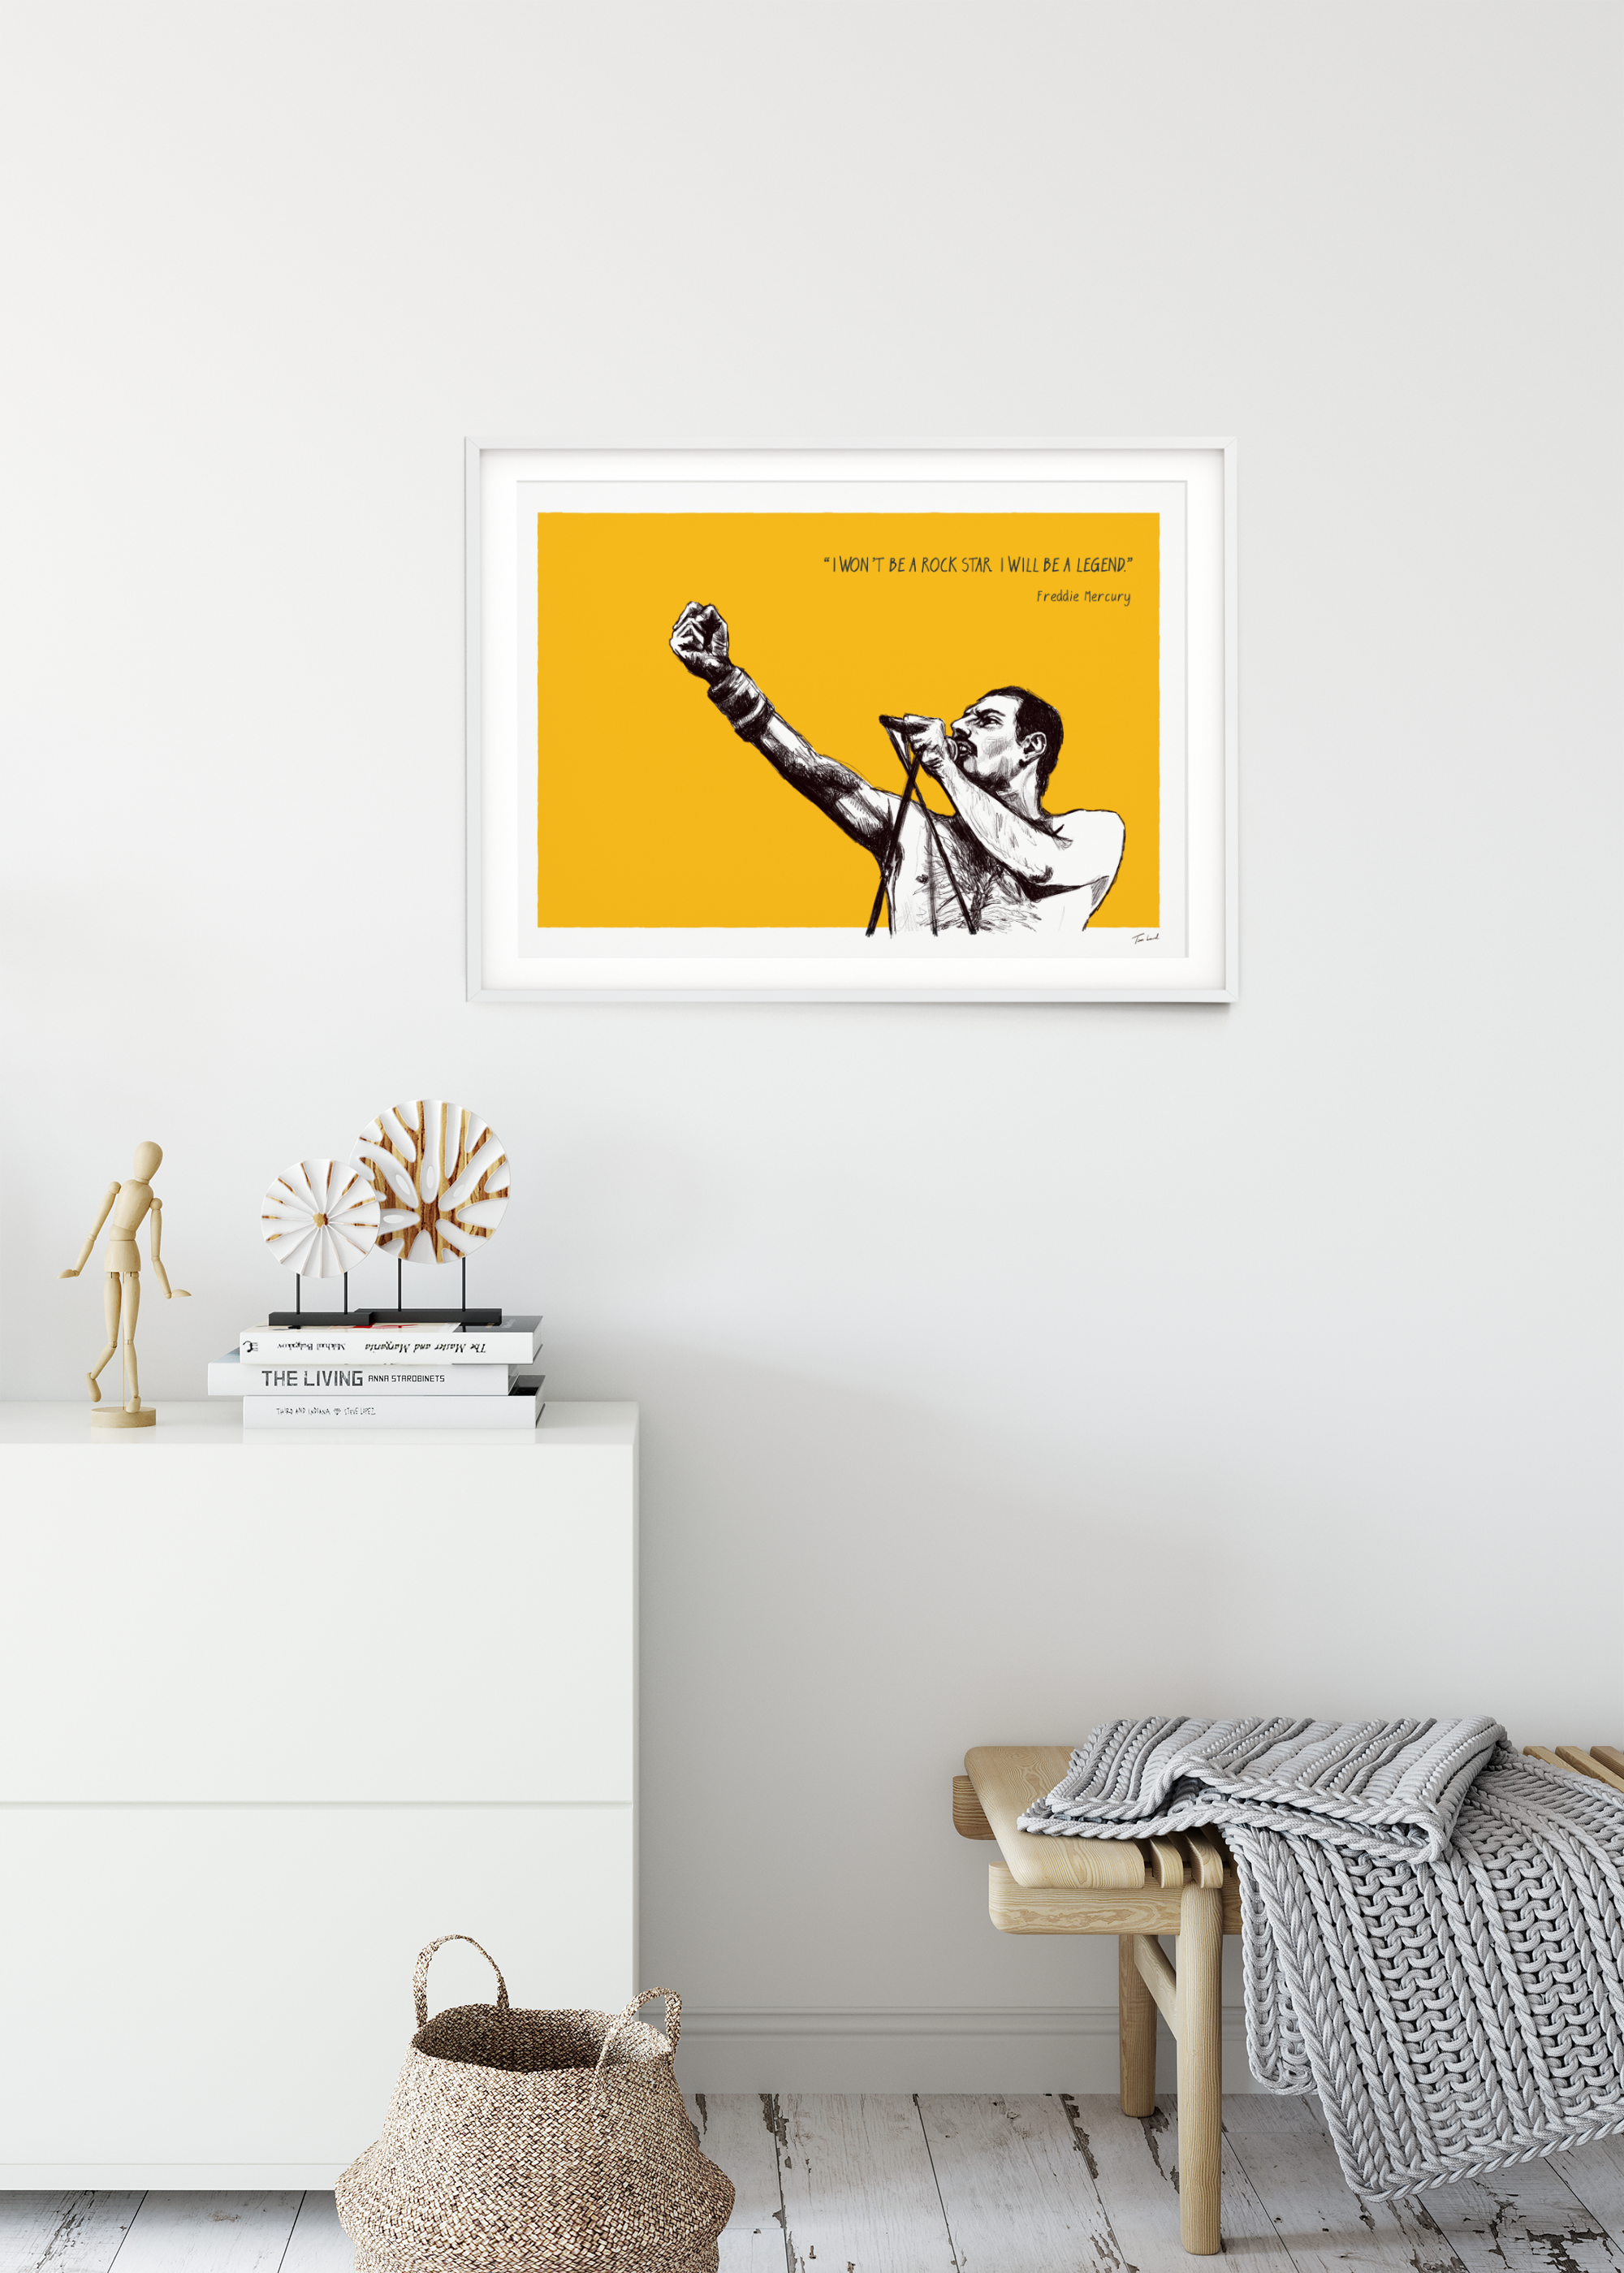 Freddie Mercury print framed in a room